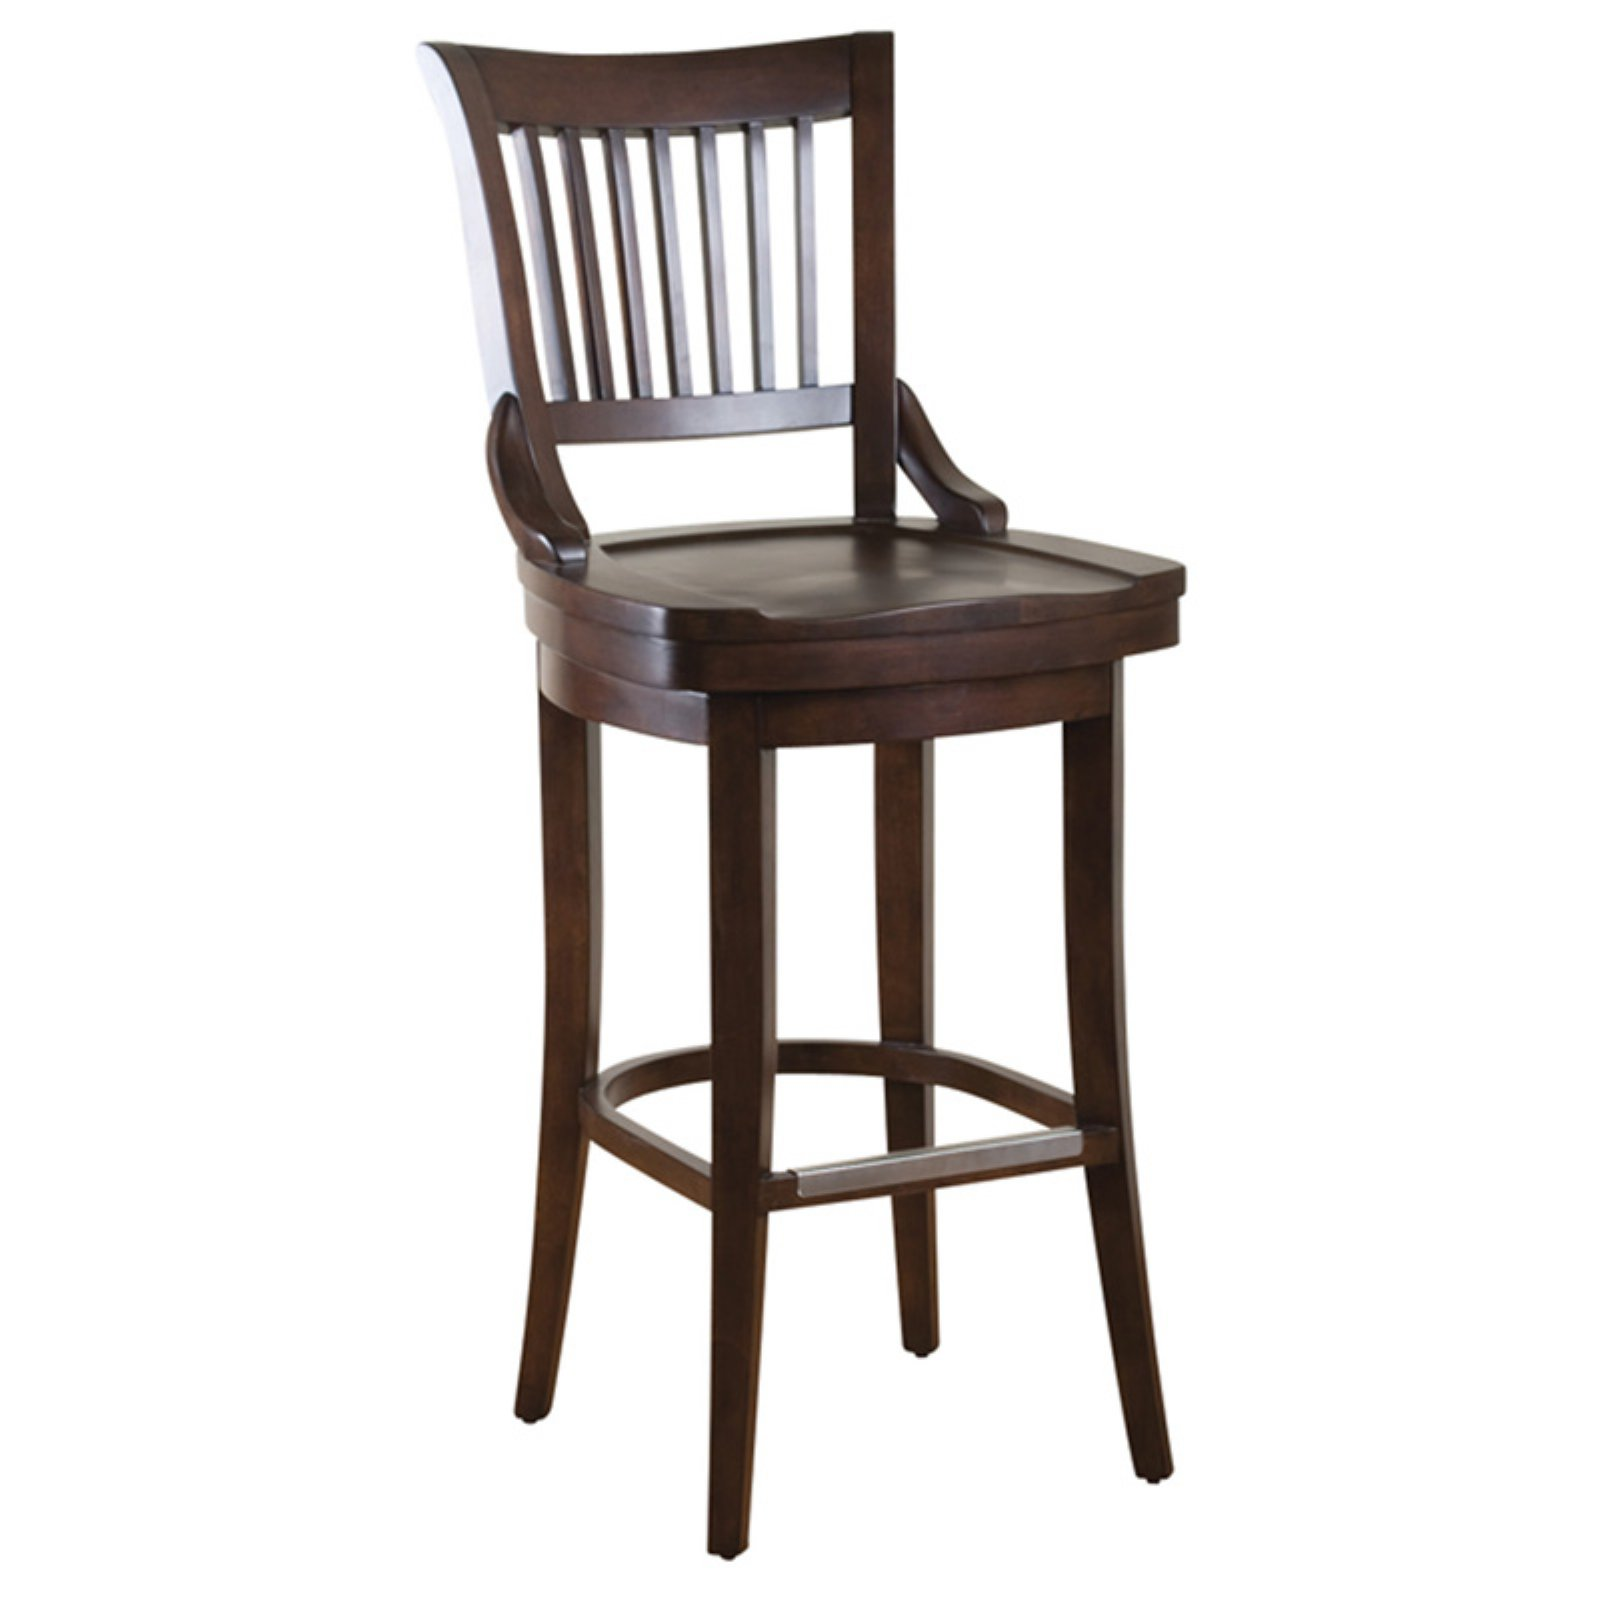 Excellent Ahb Liberty 30 In Swivel Bar Stool Machost Co Dining Chair Design Ideas Machostcouk